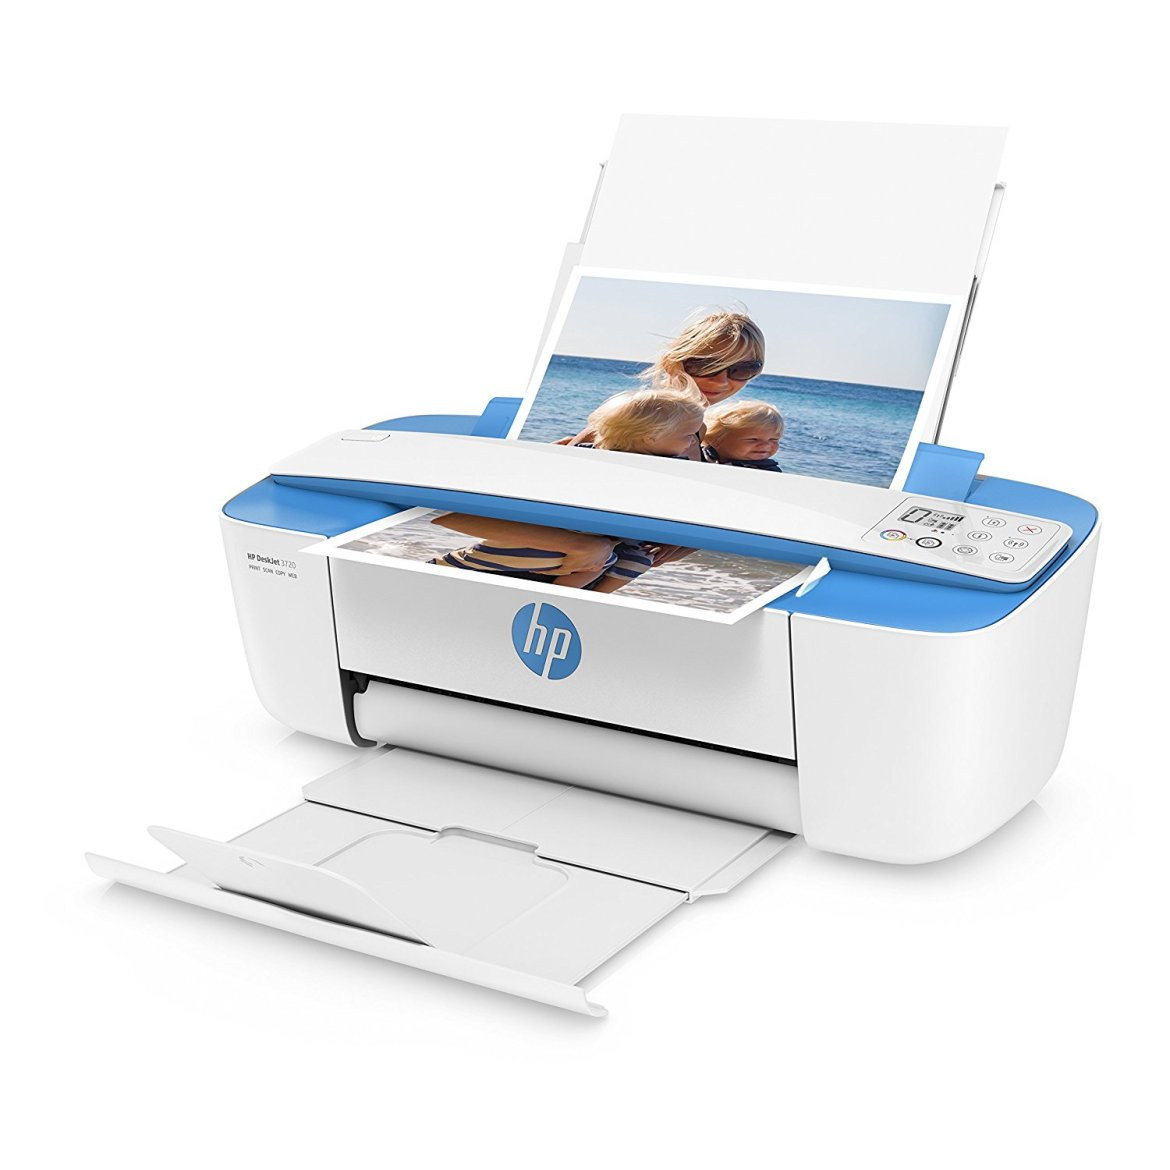 81VwoNWNhbL. SL1500  - Recensione HP DeskJet All in One 3720